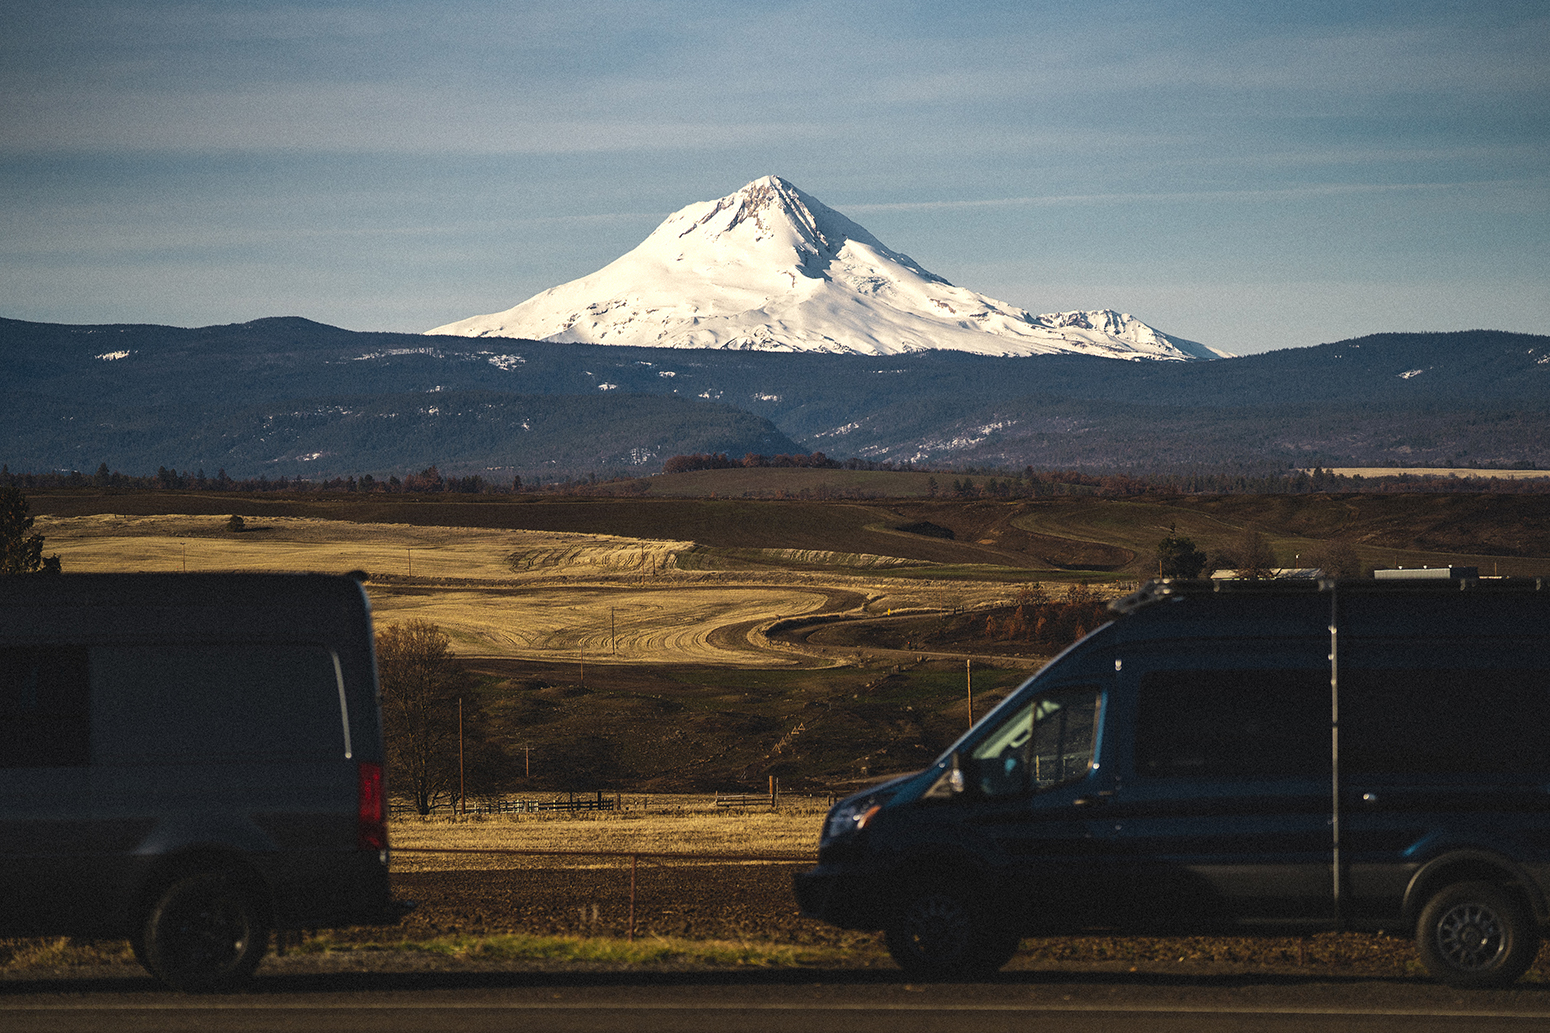 Sprinter vans with Mount Hood in the background